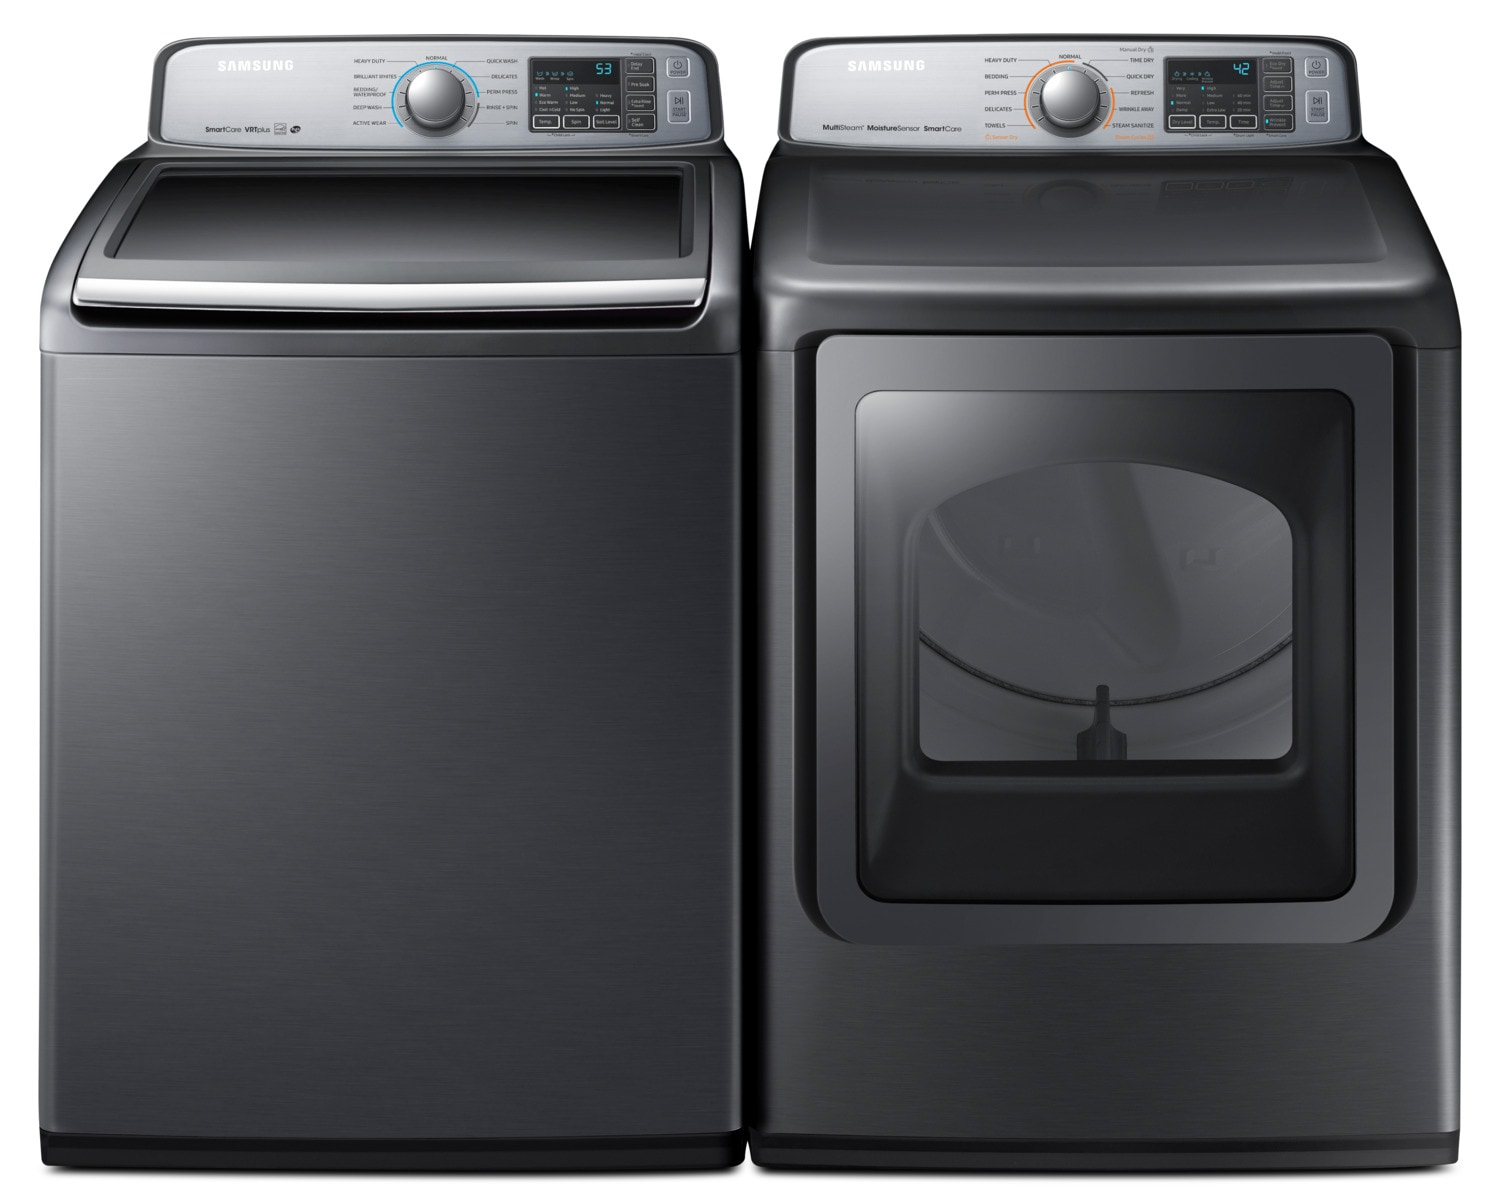 Samsung 5 8 Cu Ft Top Load Washer And 7 4 Cu Ft Multi